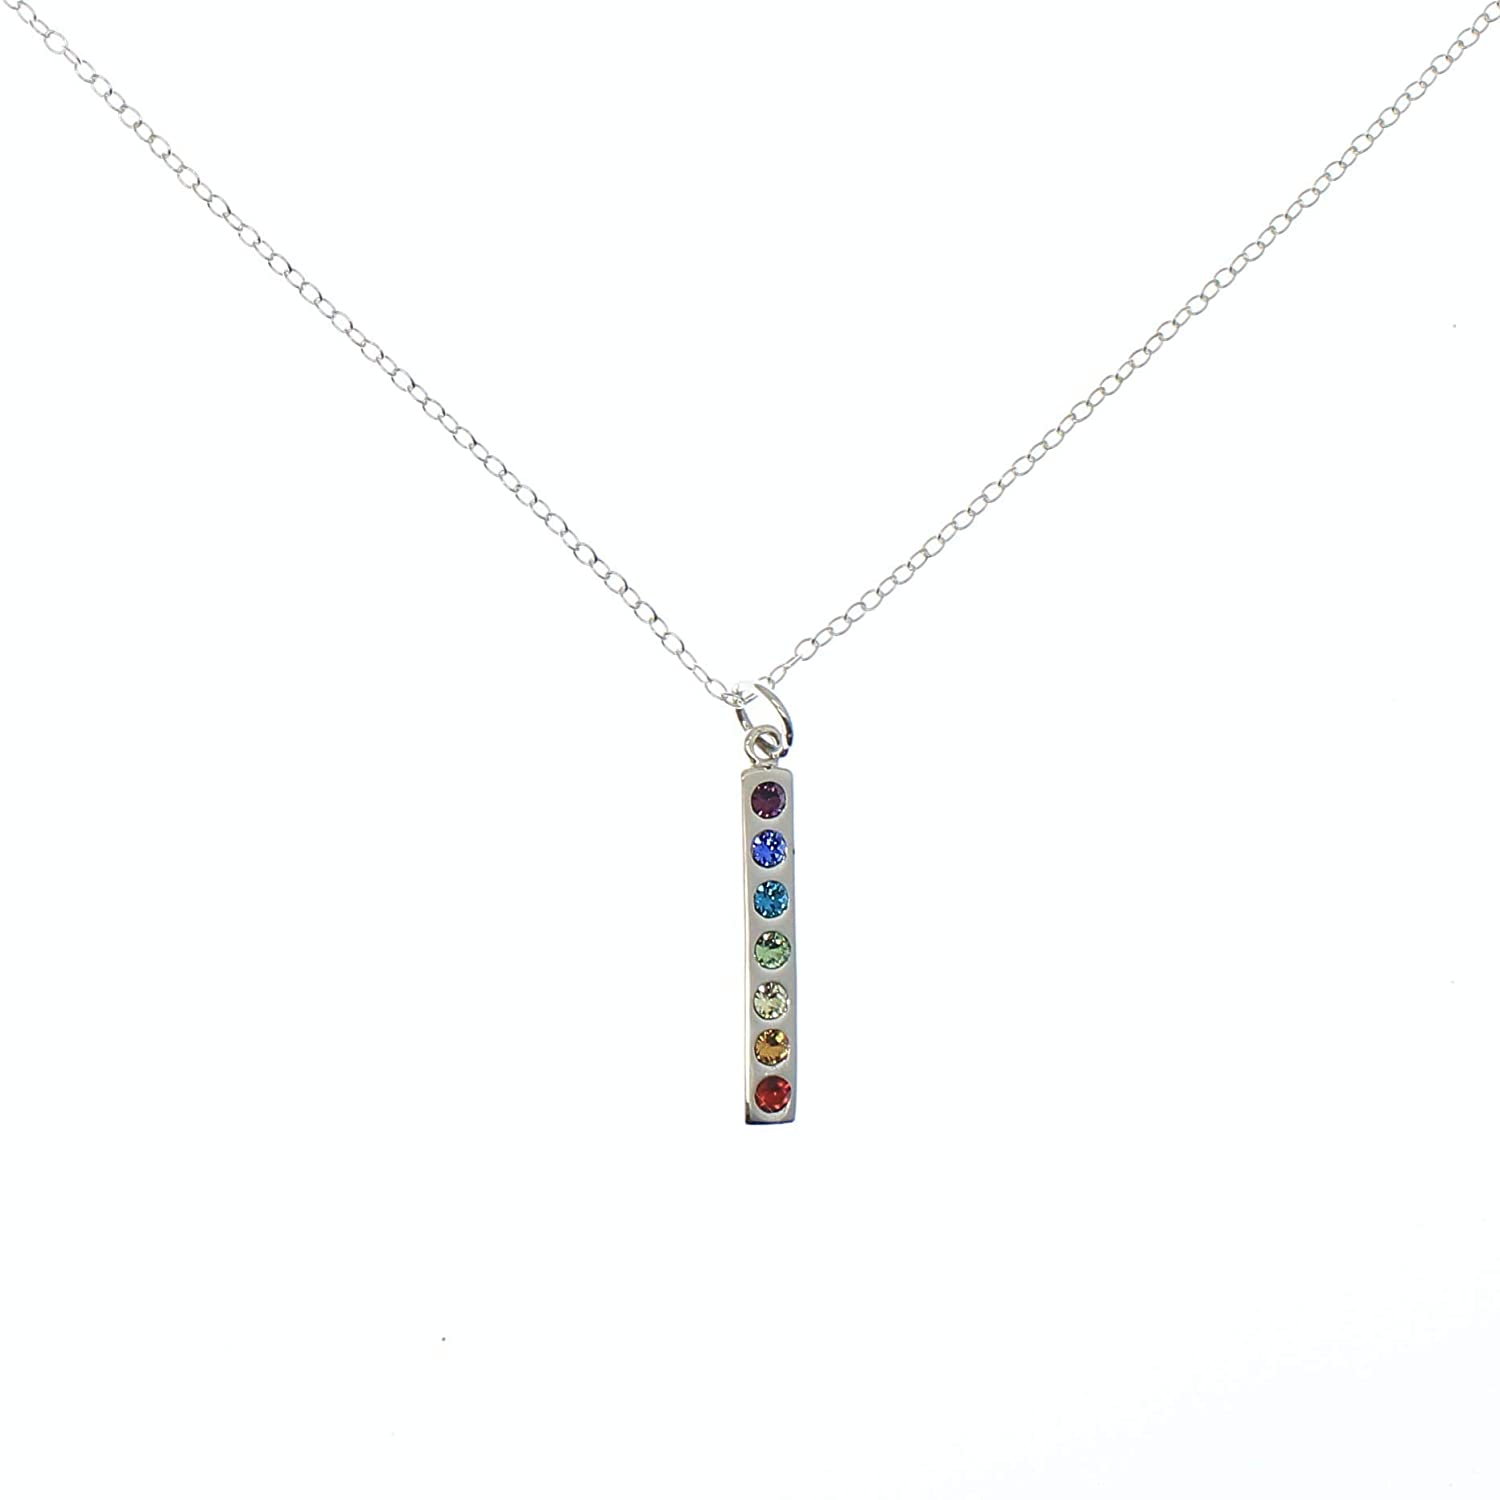 Chakra Rainbow Necklace with Crystals - Love It Personalized